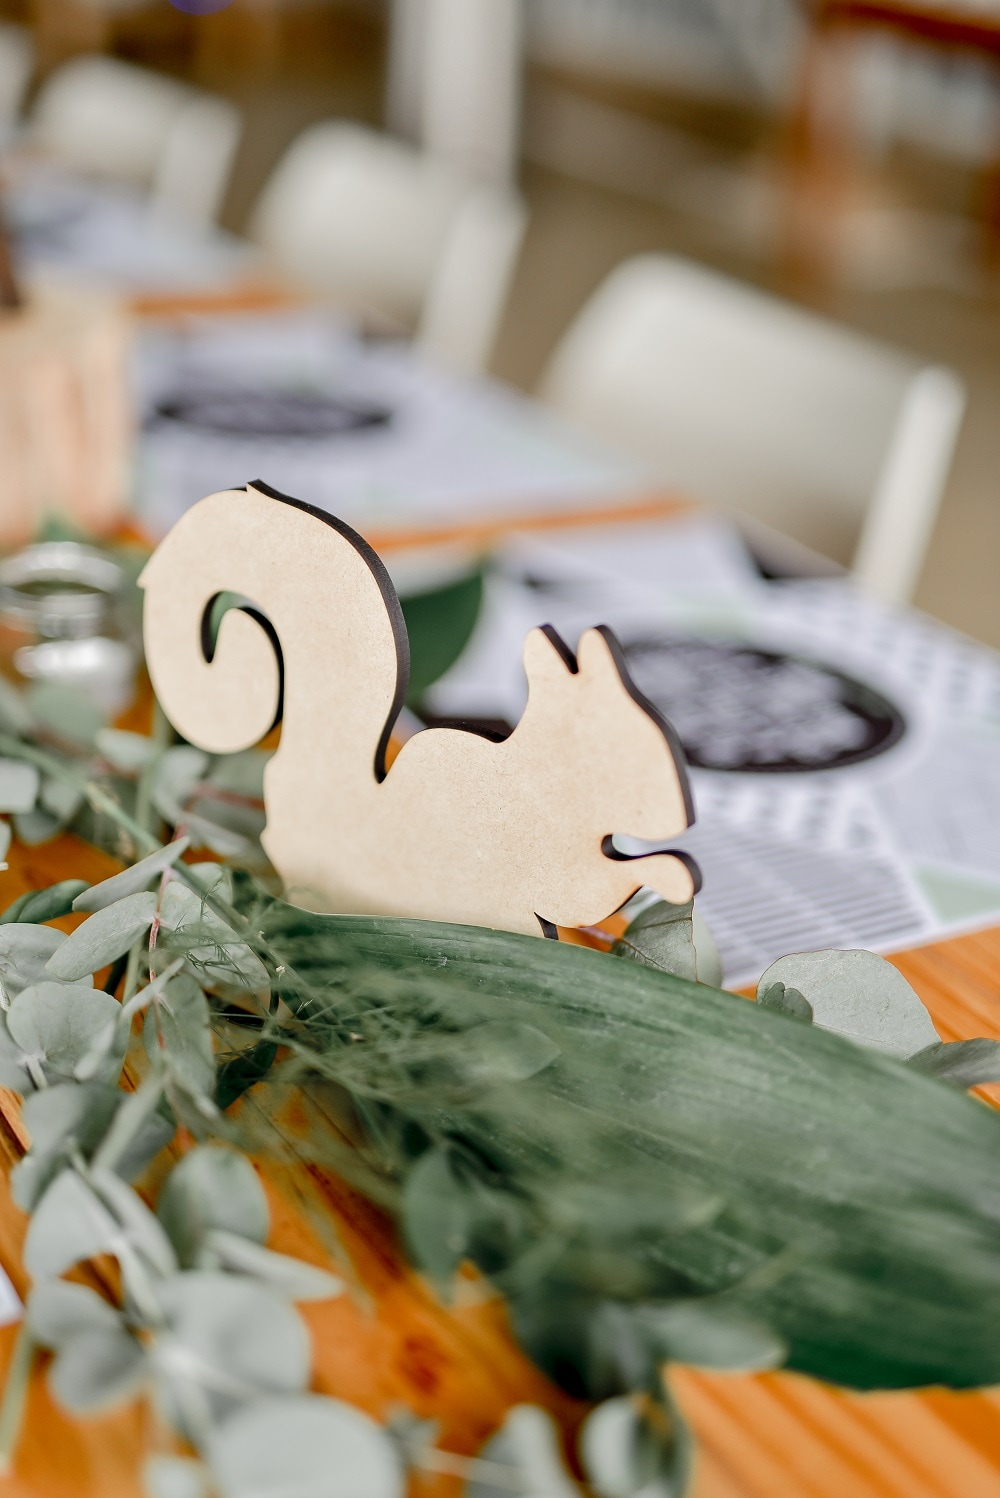 Woodlands themed baby shower and decor ideas.